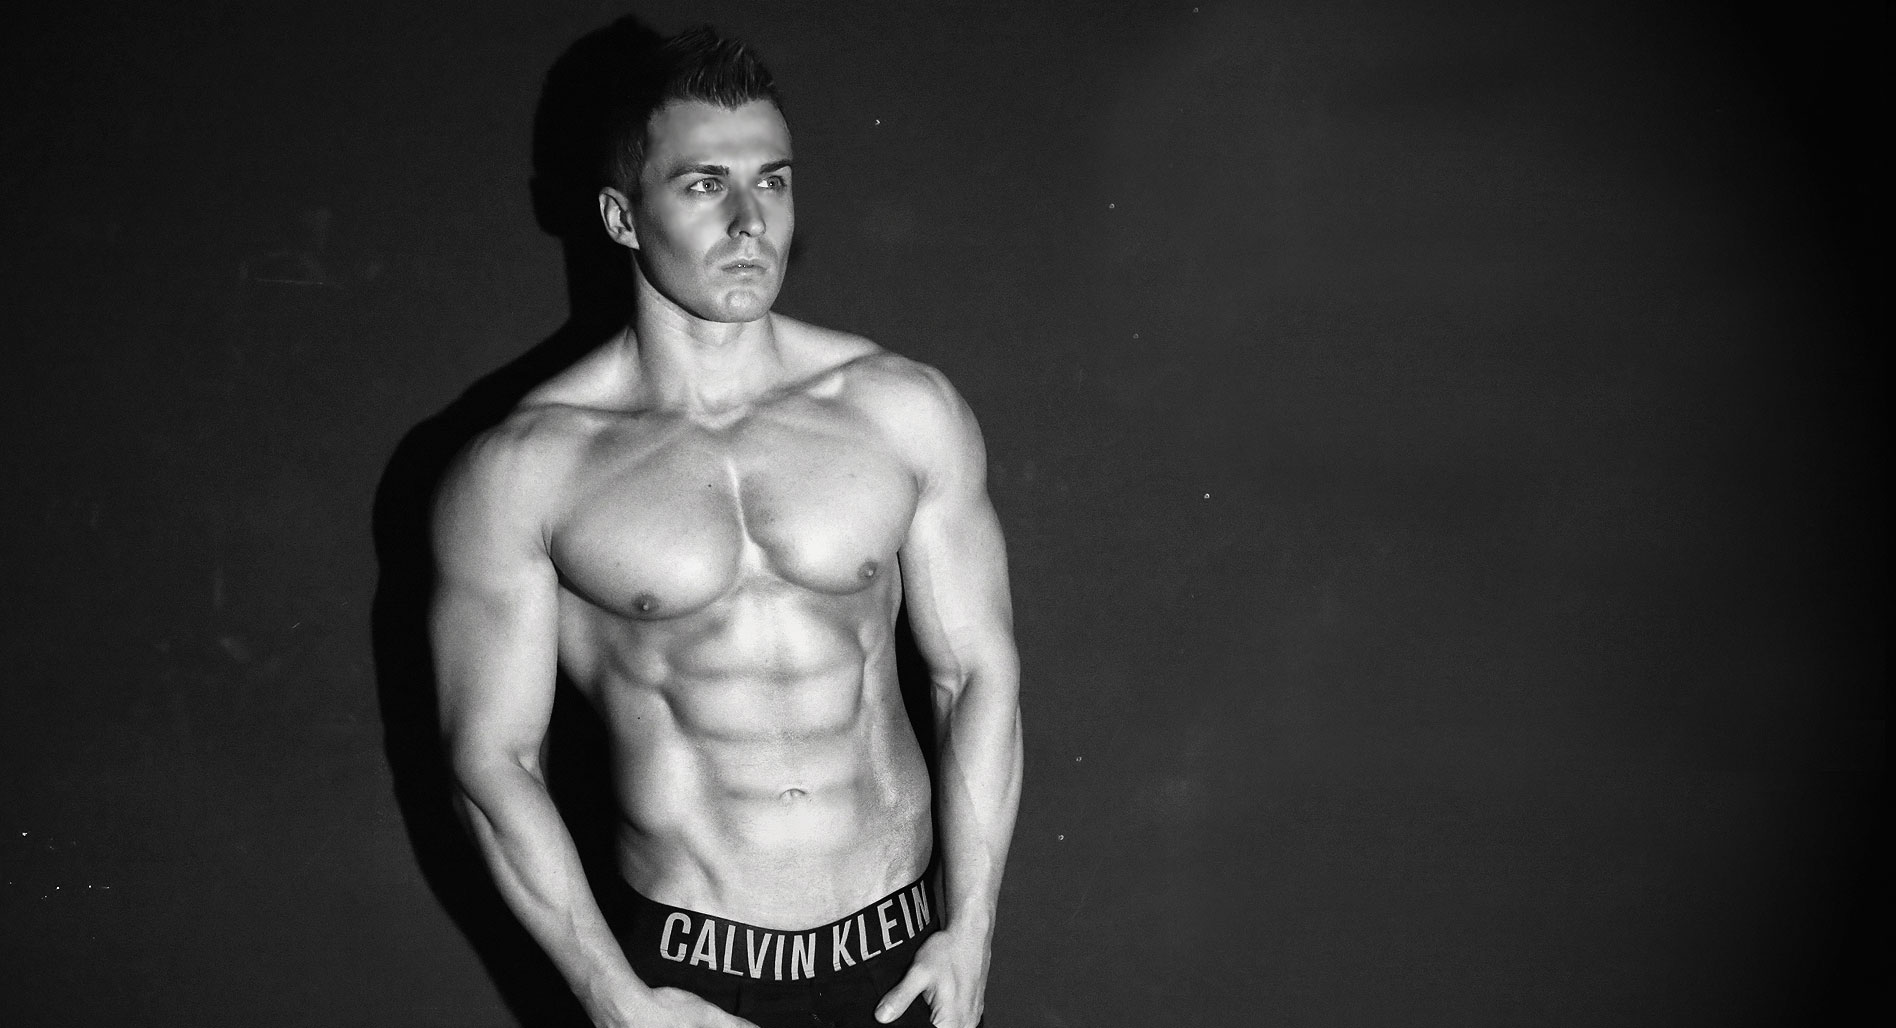 Get hench & shredded in just 20 minutes